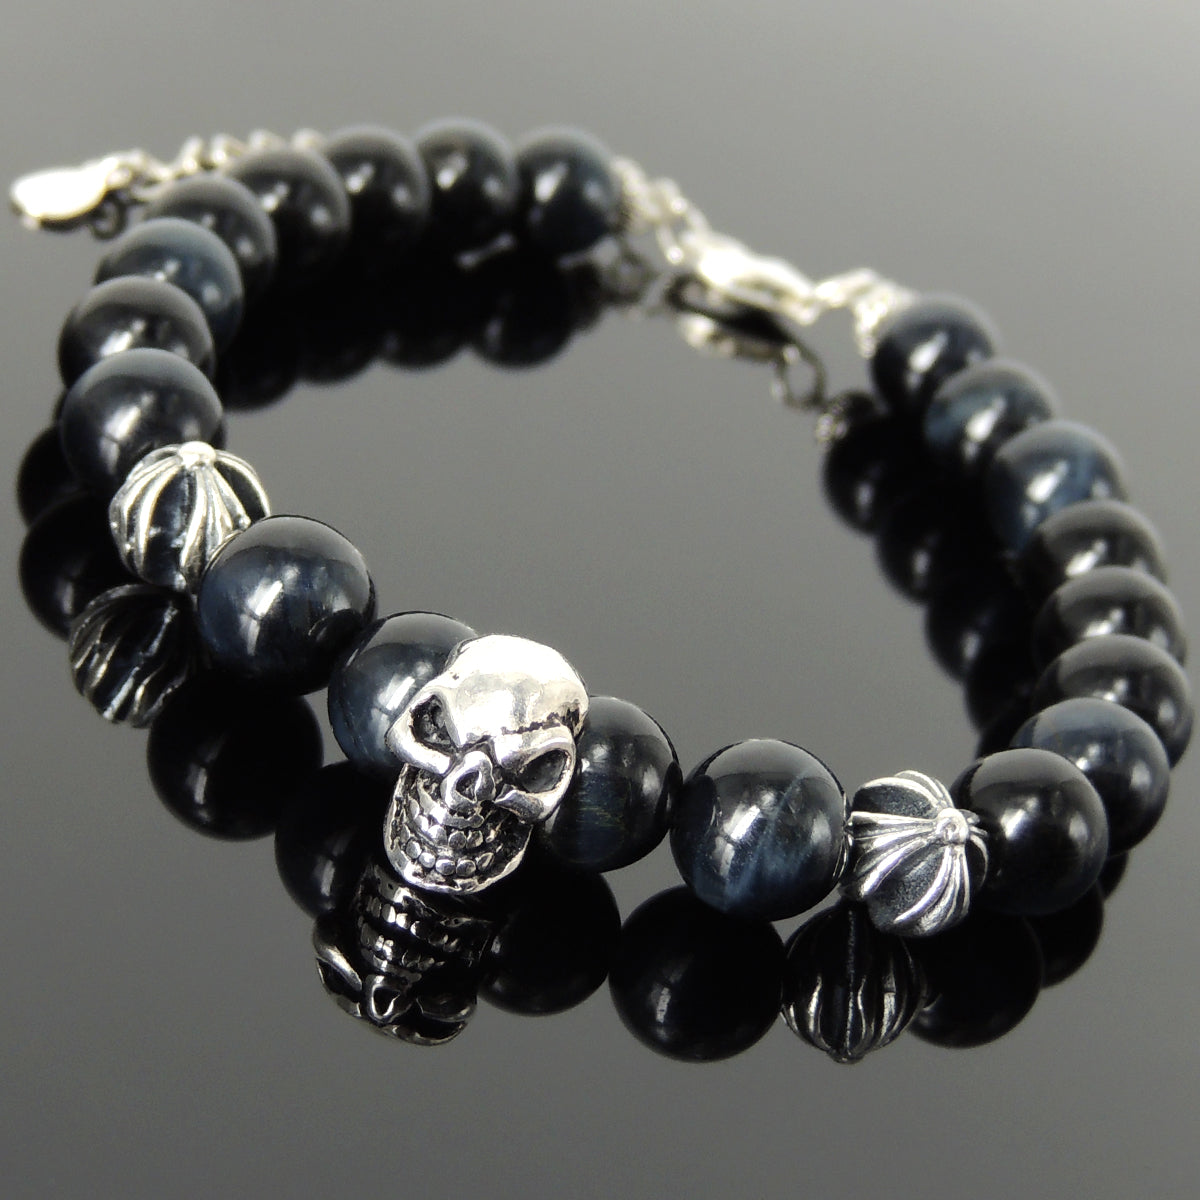 Spiritual Skull & Cross Clasp Bracelet with Healing Blue Tiger Eye 8mm Gemstones with Genuine S925 Sterling Silver Parts - BR1477